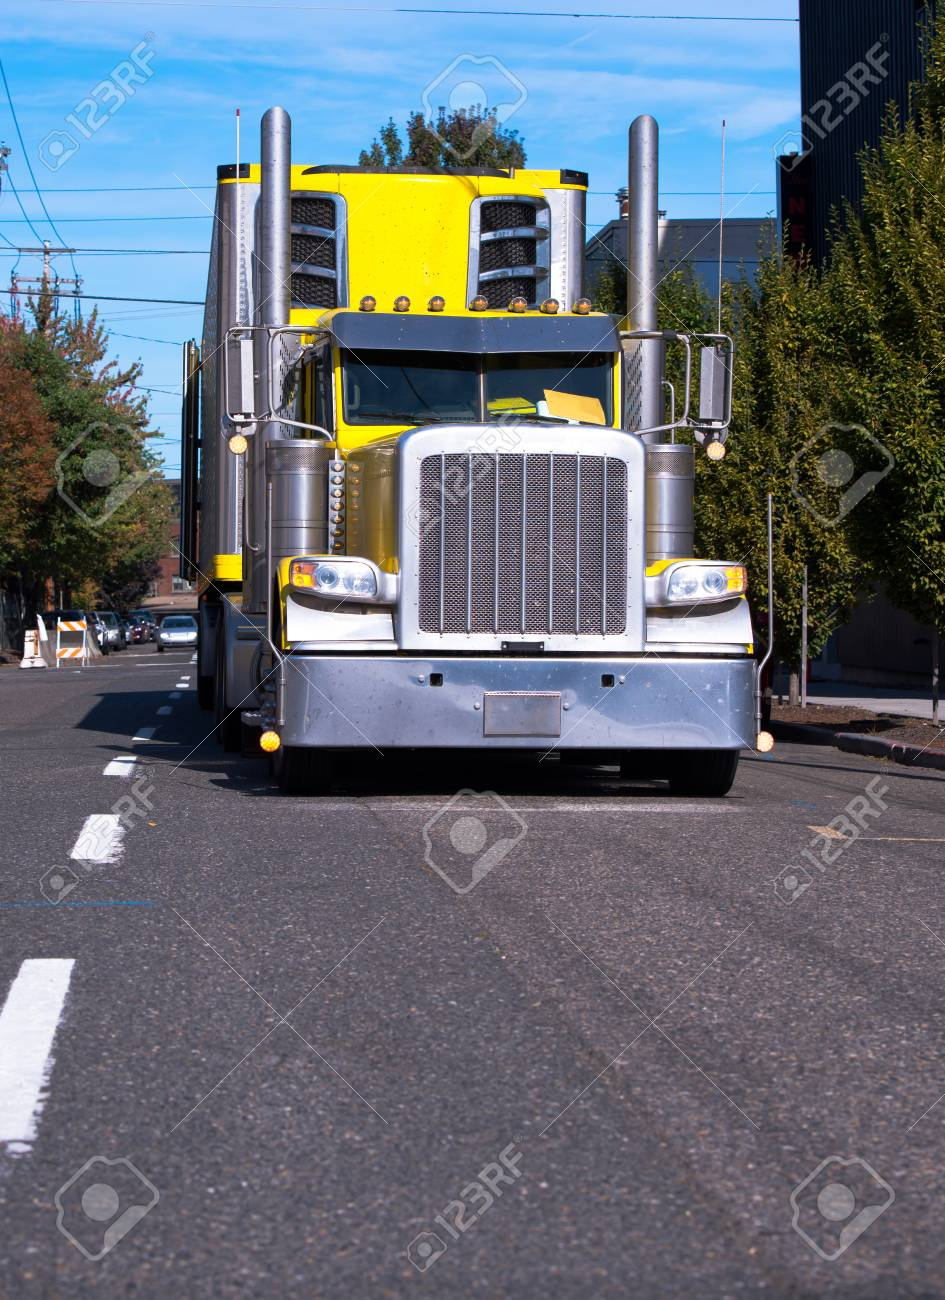 Tall City Delivery >> Bright Yellow American Classic Big Rig Semi Truck Fleet With